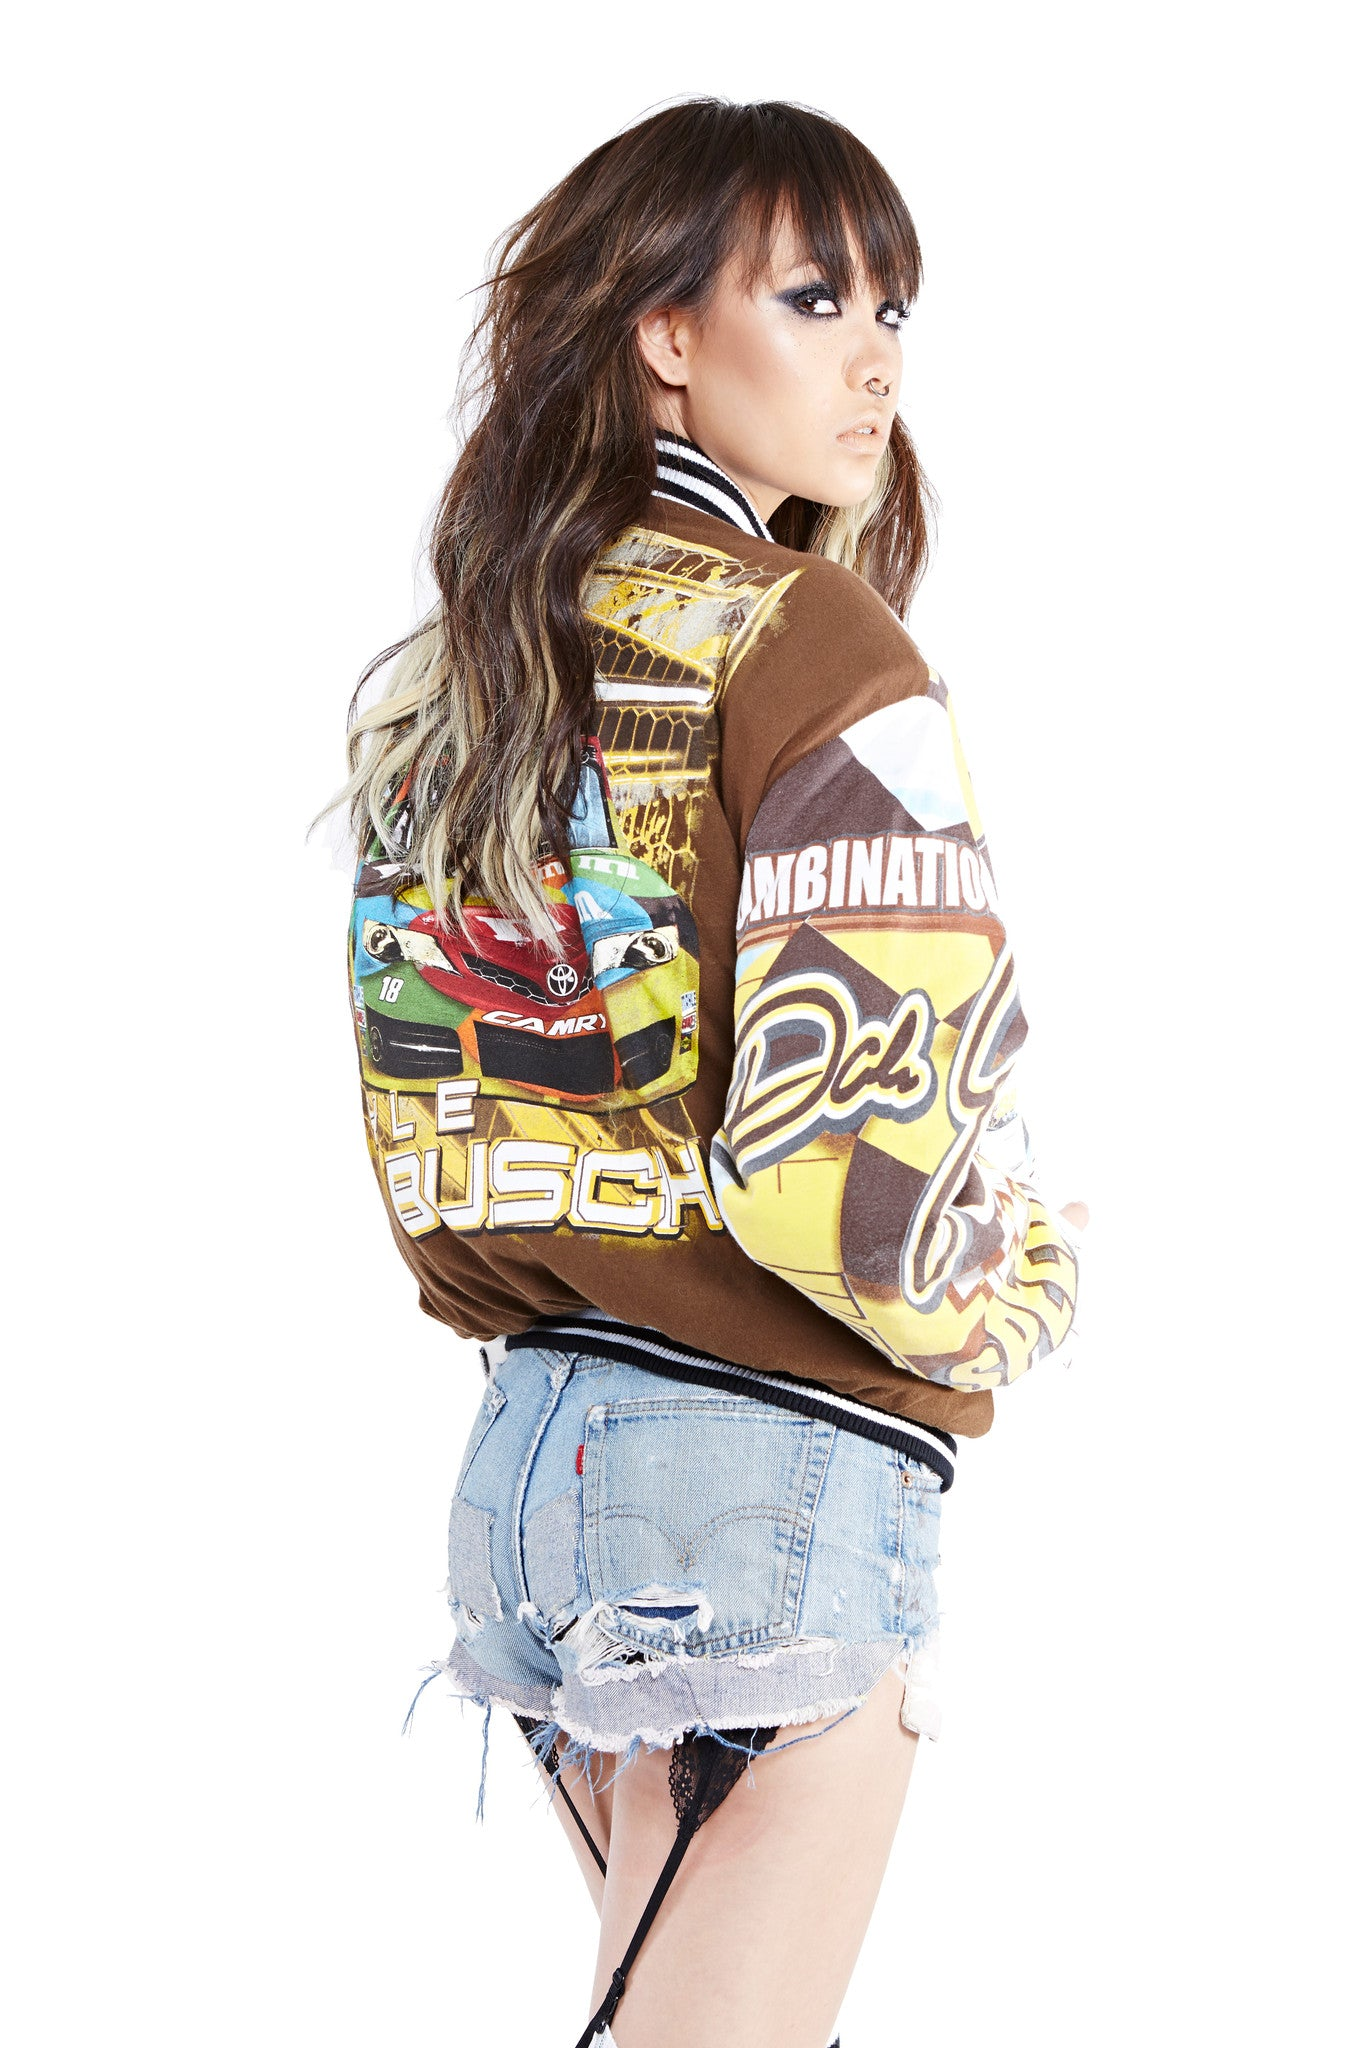 Hybrid Racing Bomber Jacket - 88 Daytona - I LOVE DIY by Panida